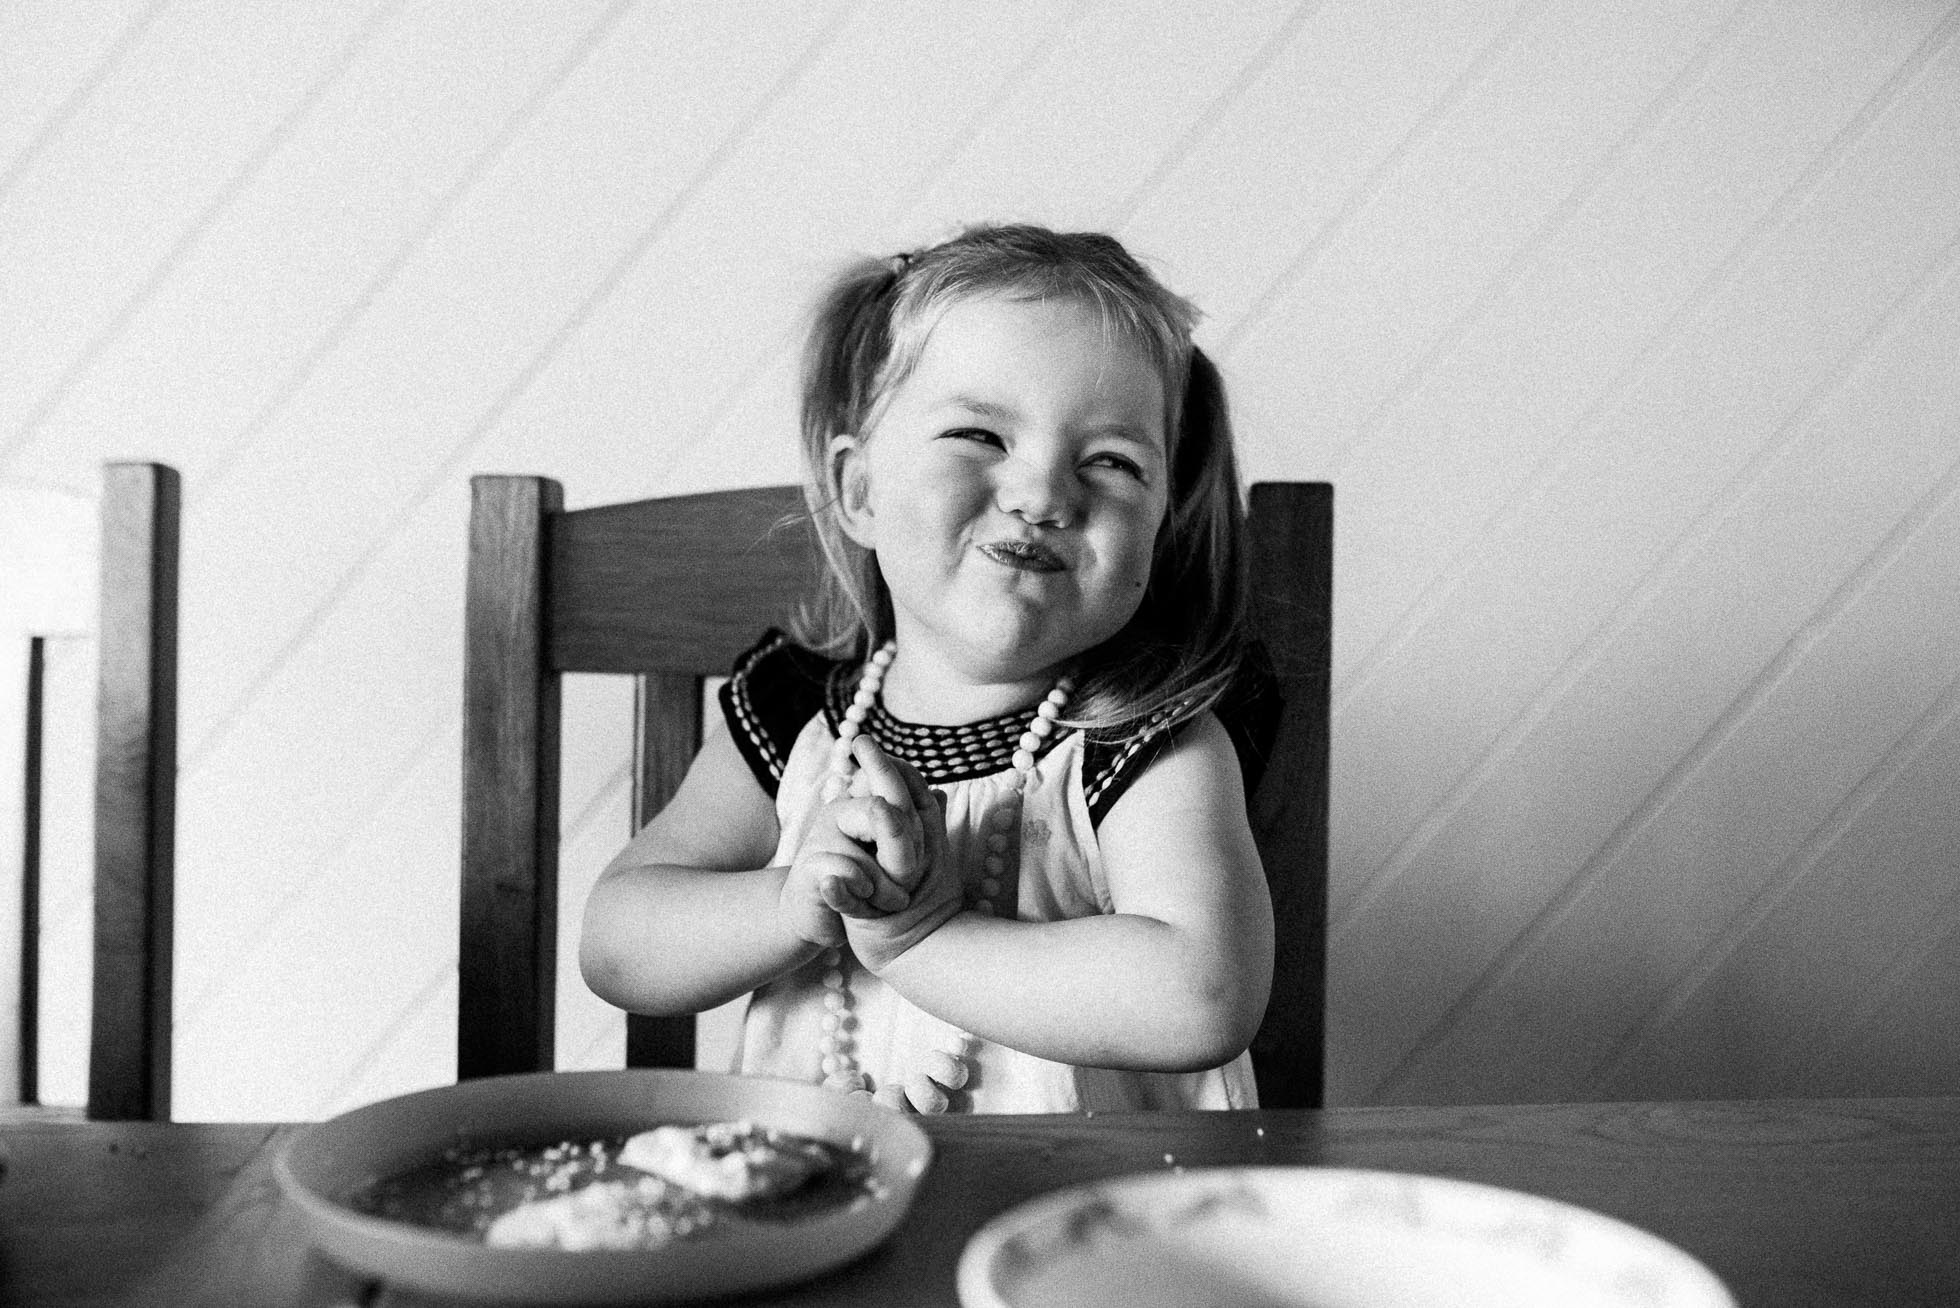 child-smiling-after-eating-cookie-at-kitchen-table-black-and-white-melbourne-family-photographer.jpg